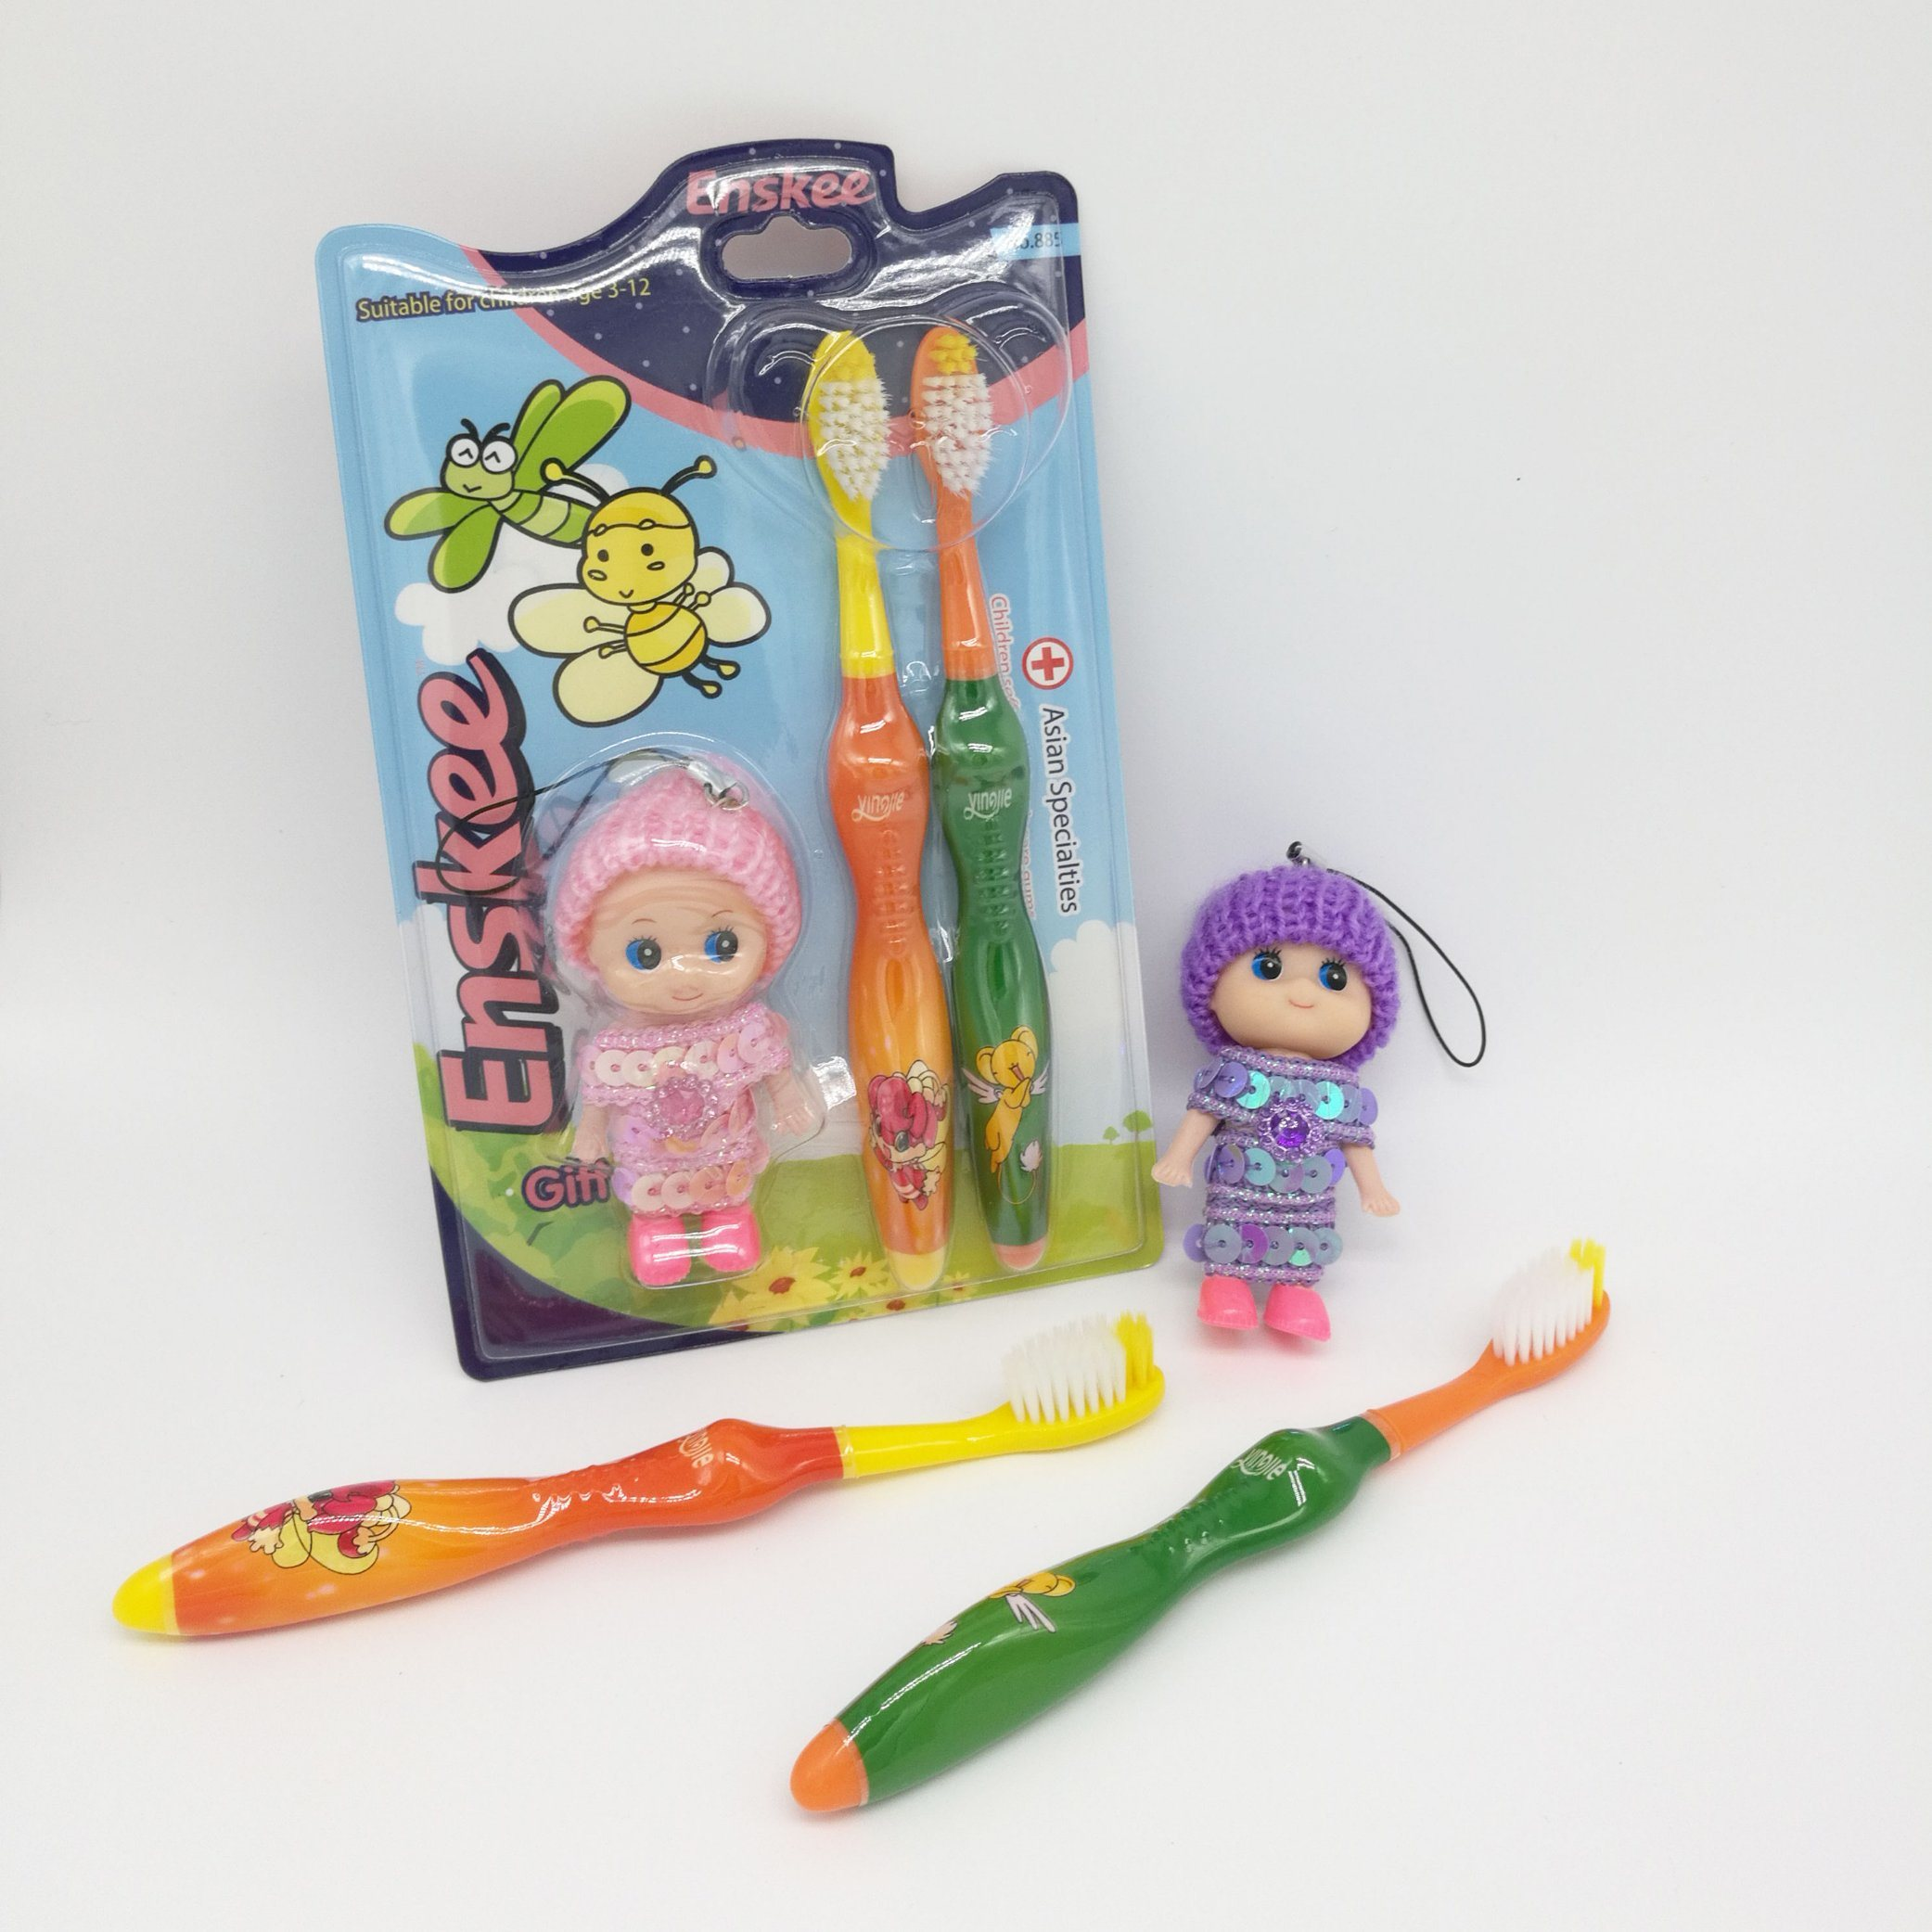 Kid/Child/Children Toothbrush with Slender & Soft Bristles 2 in 1, Gift Included The Pack 885 pictures & photos